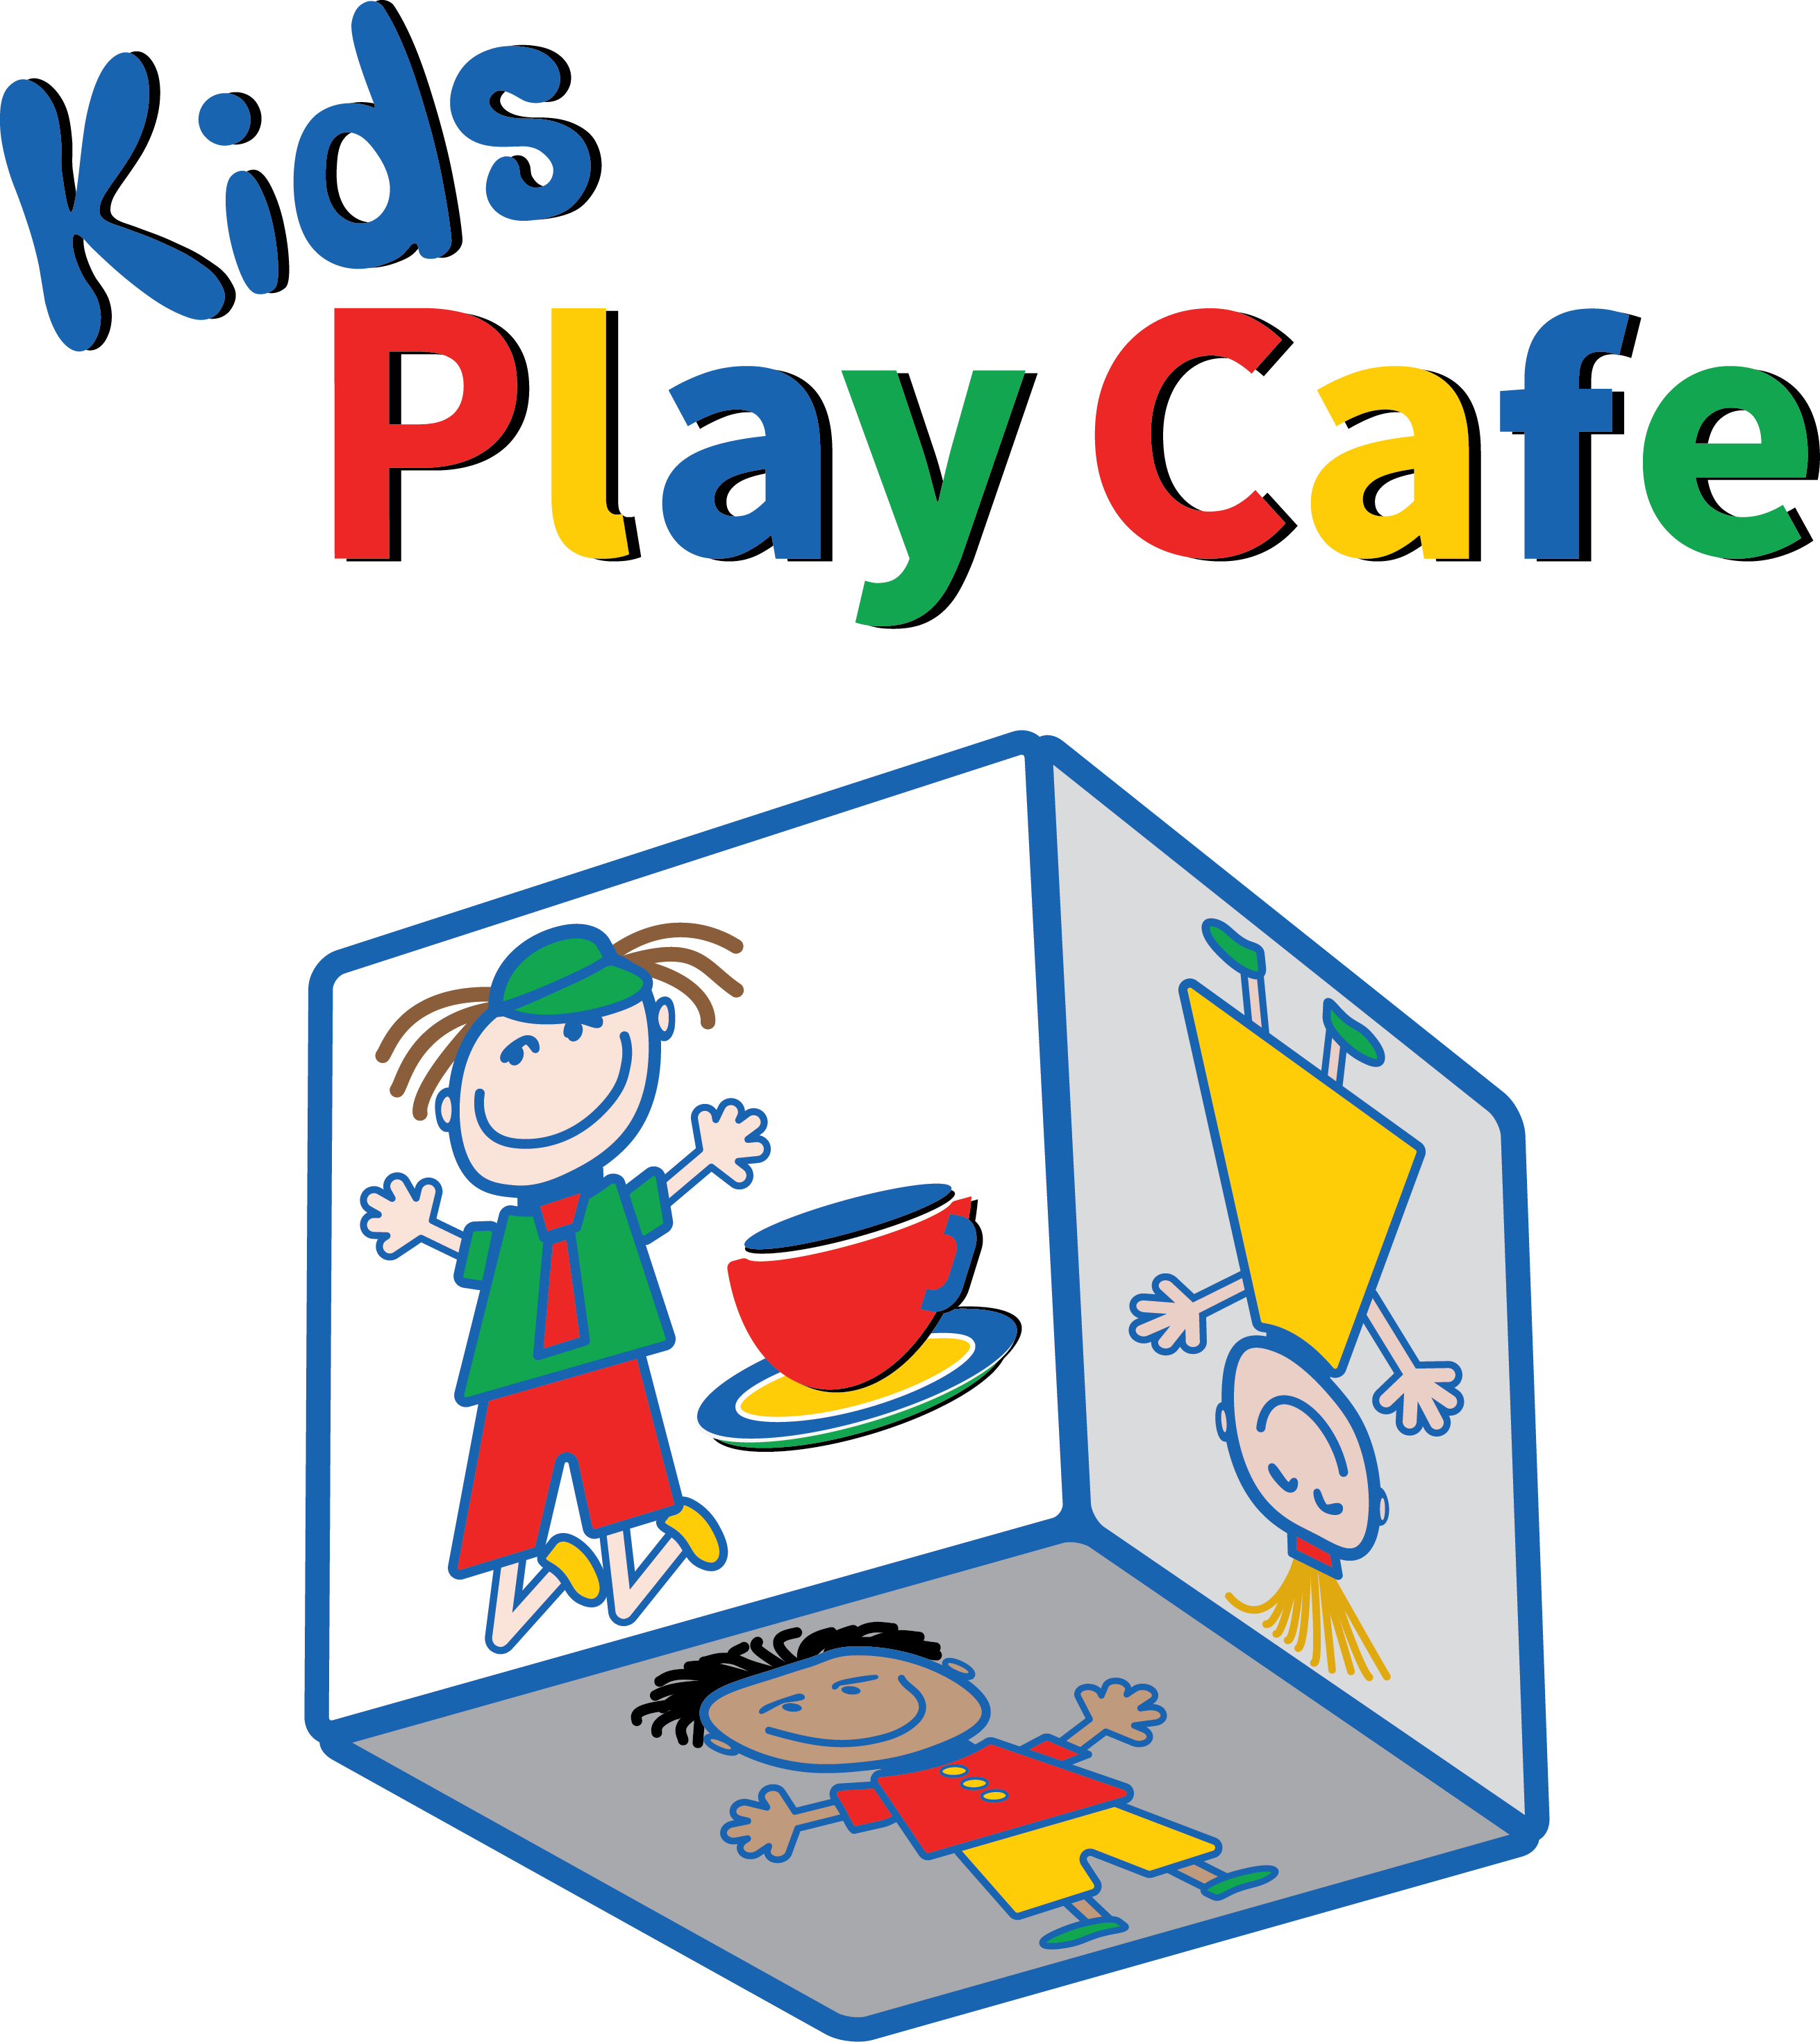 Kids Play Cafe Logo